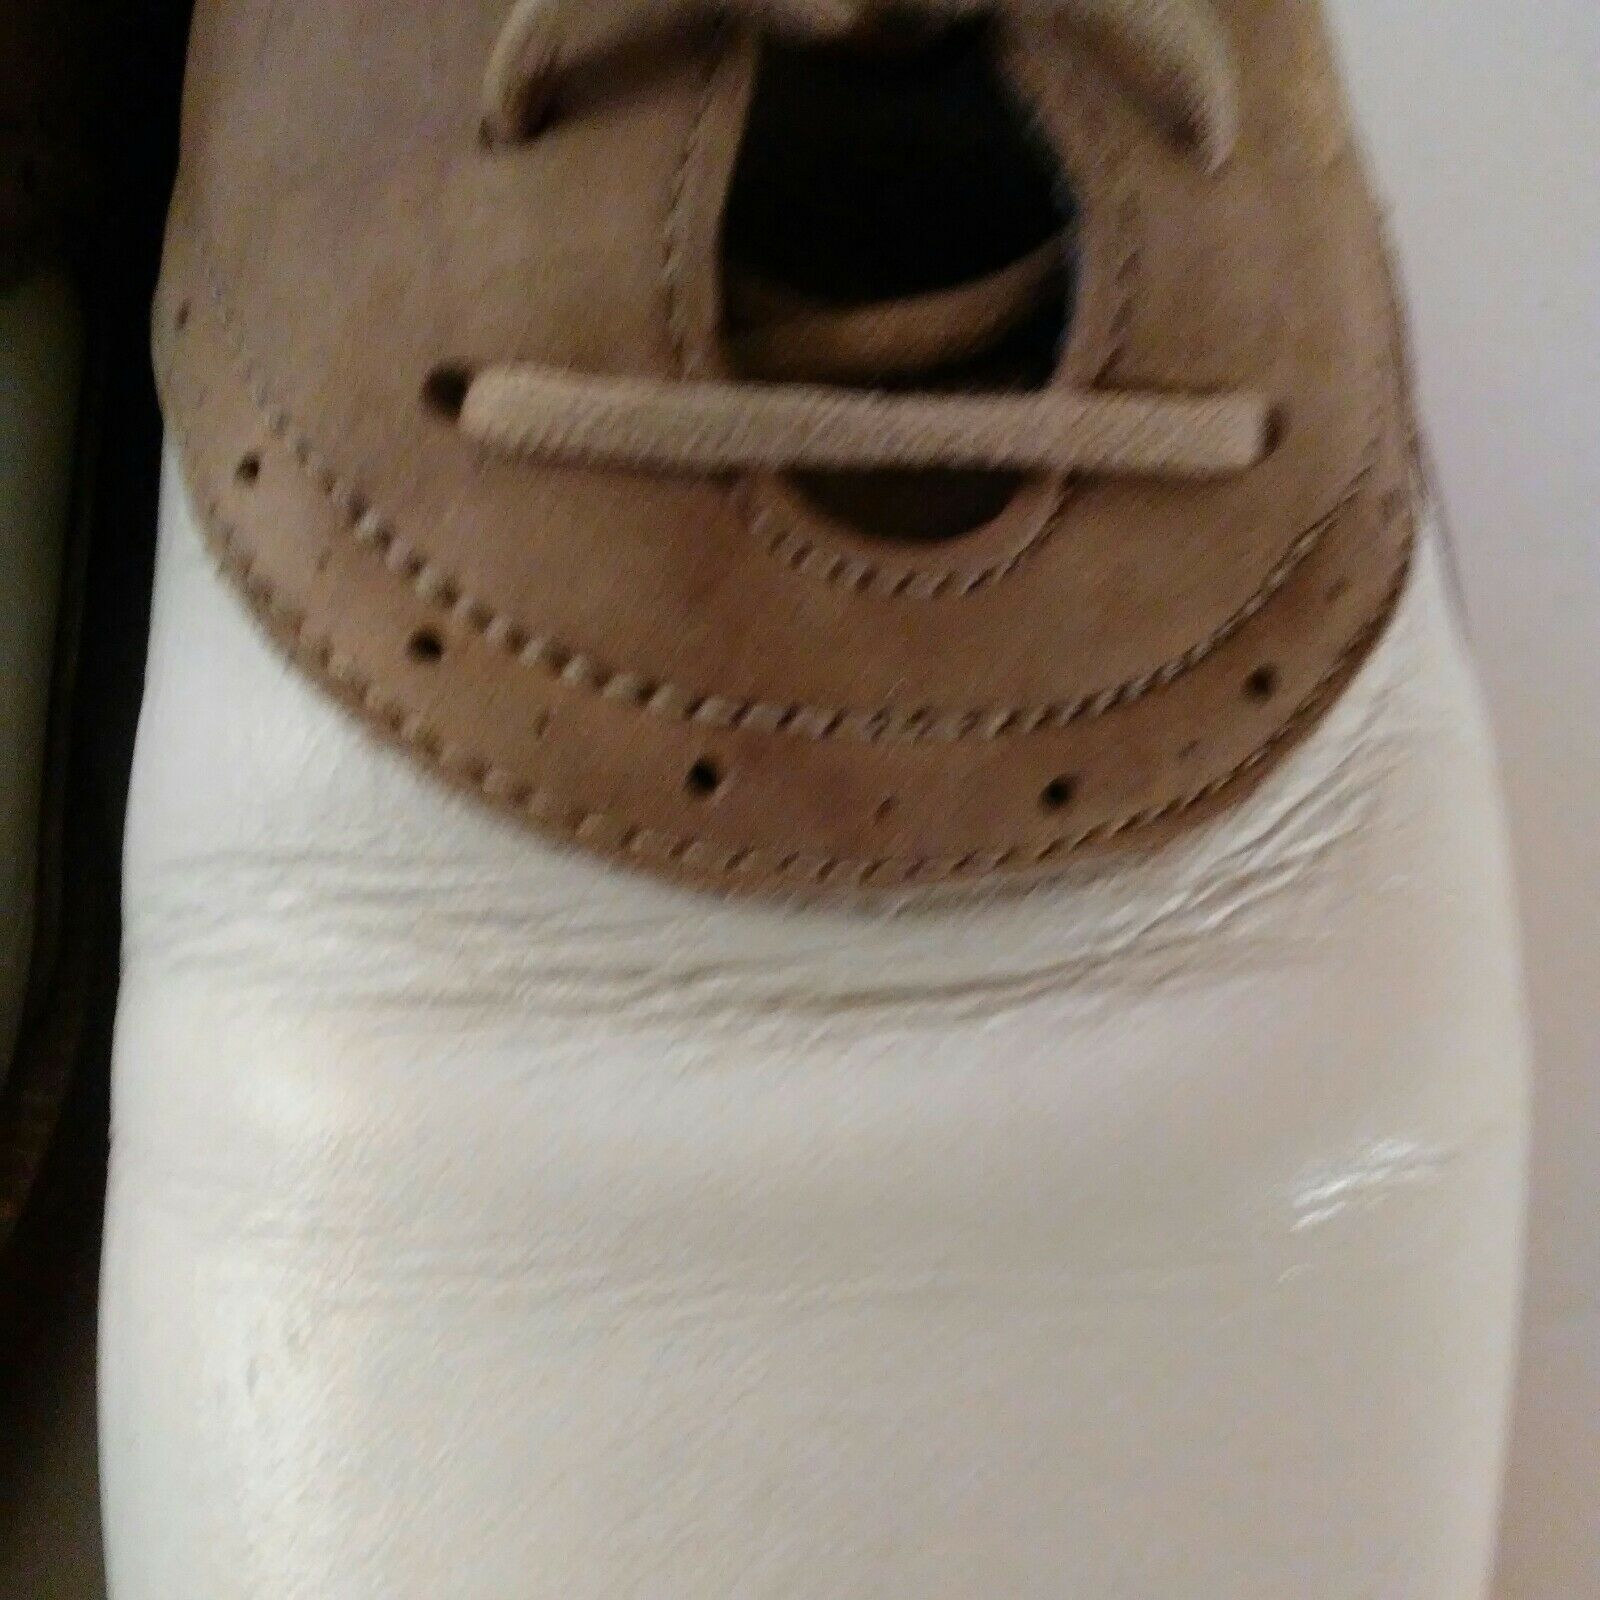 Nike Air Classic Plus White & Brown Saddle Golf Shoes Size 9 image 6